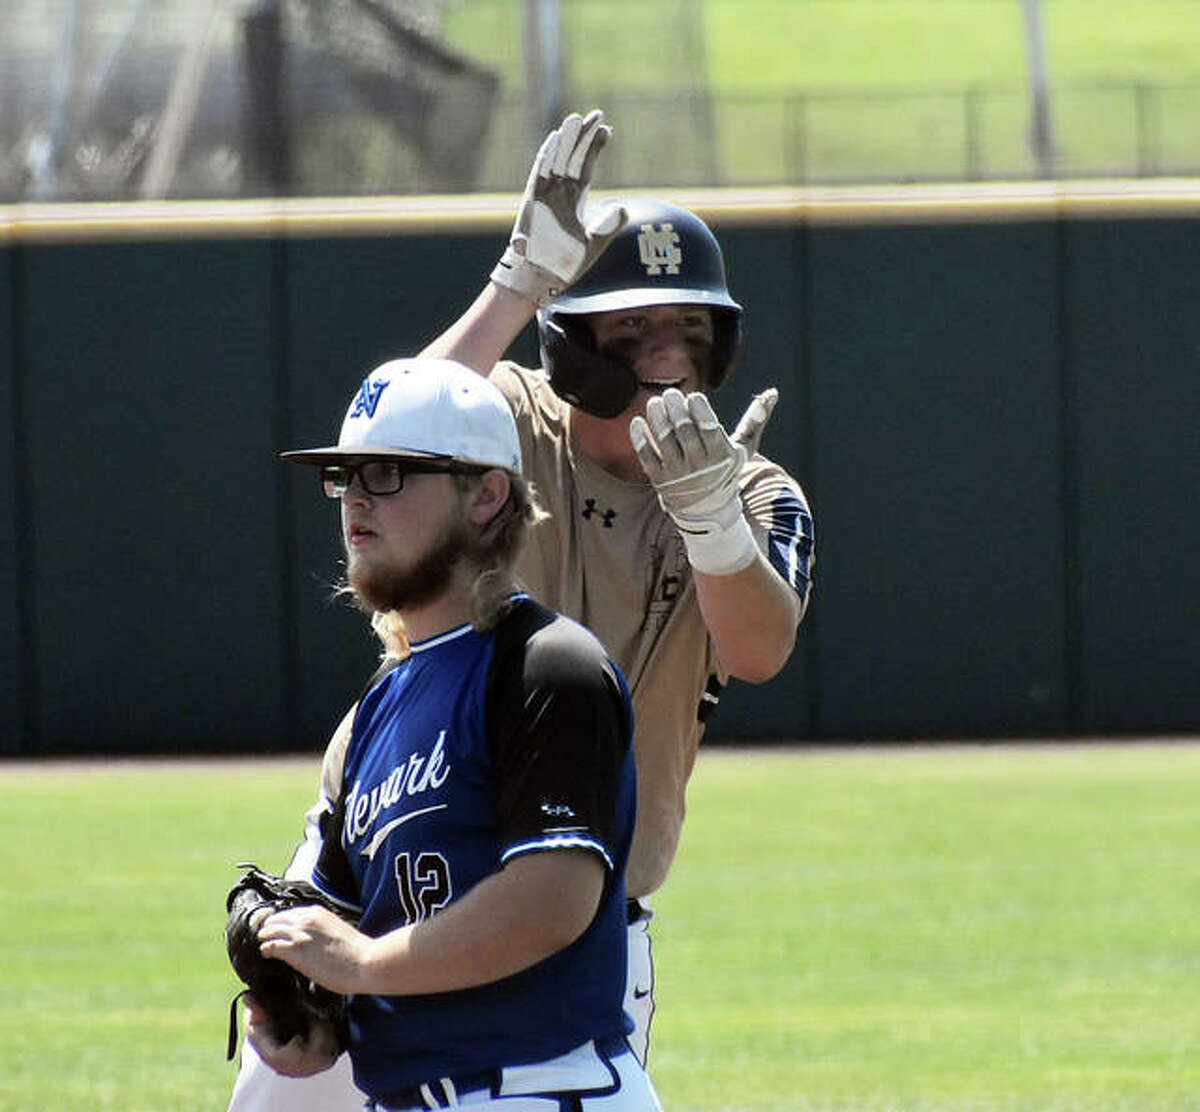 Father McGivney first baseman Gabe Smith celebrates after hitting an RBI single against Newark in the Class 1A state semifinals on Thursday in Normal.